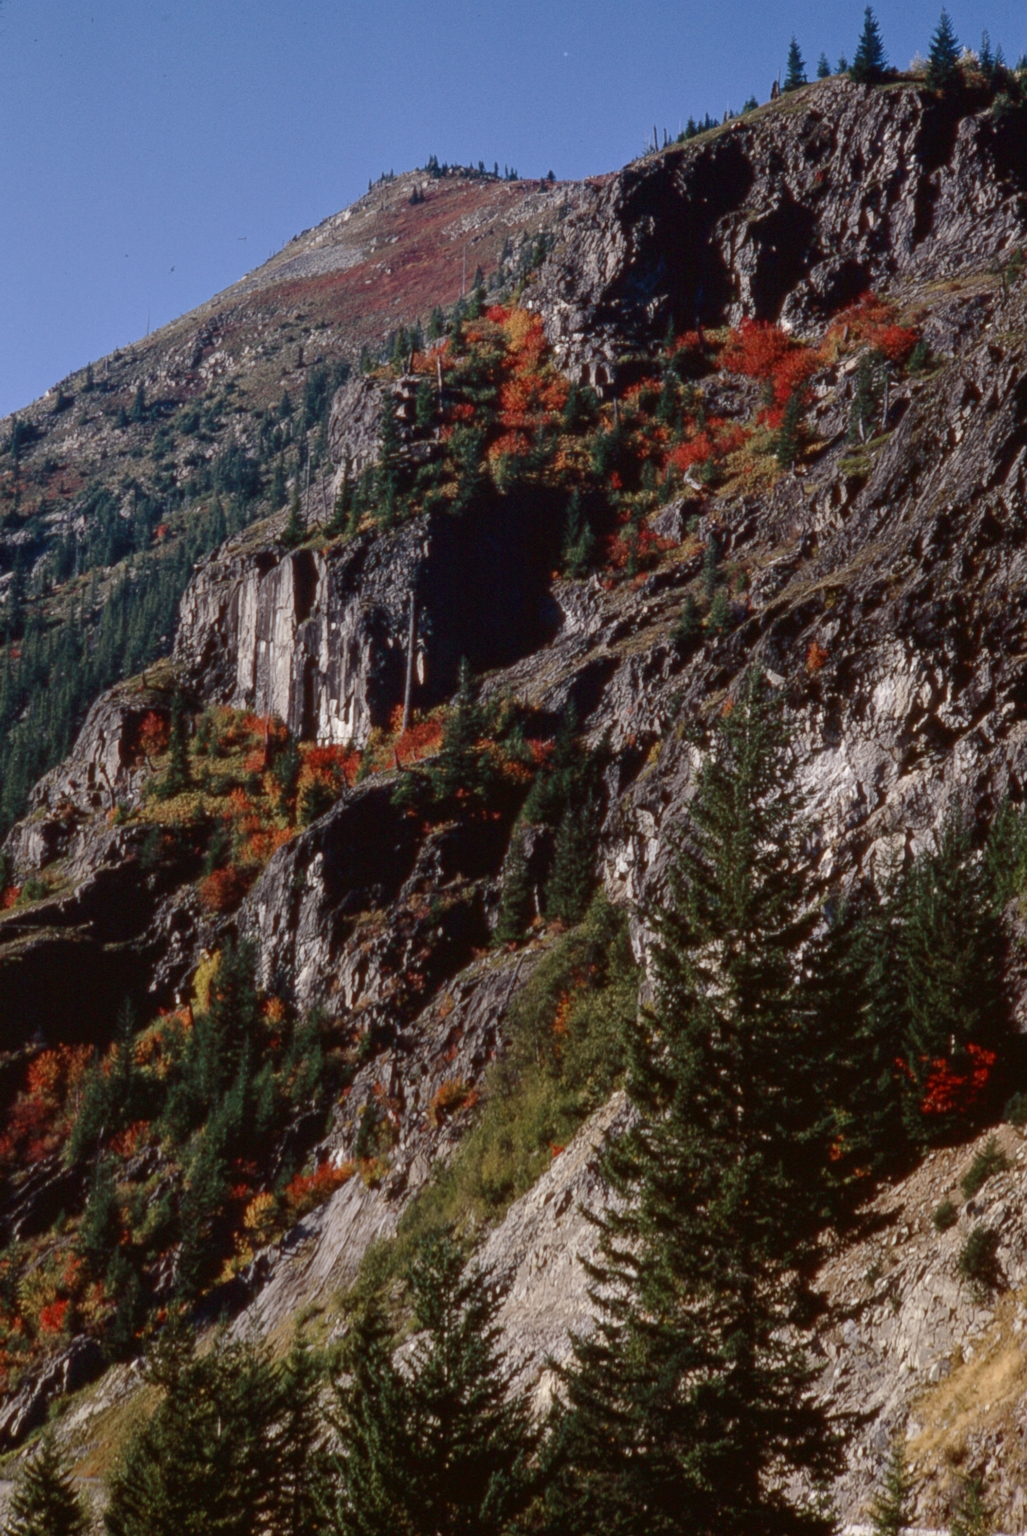 Fall foliage in Mount Rainier National Park